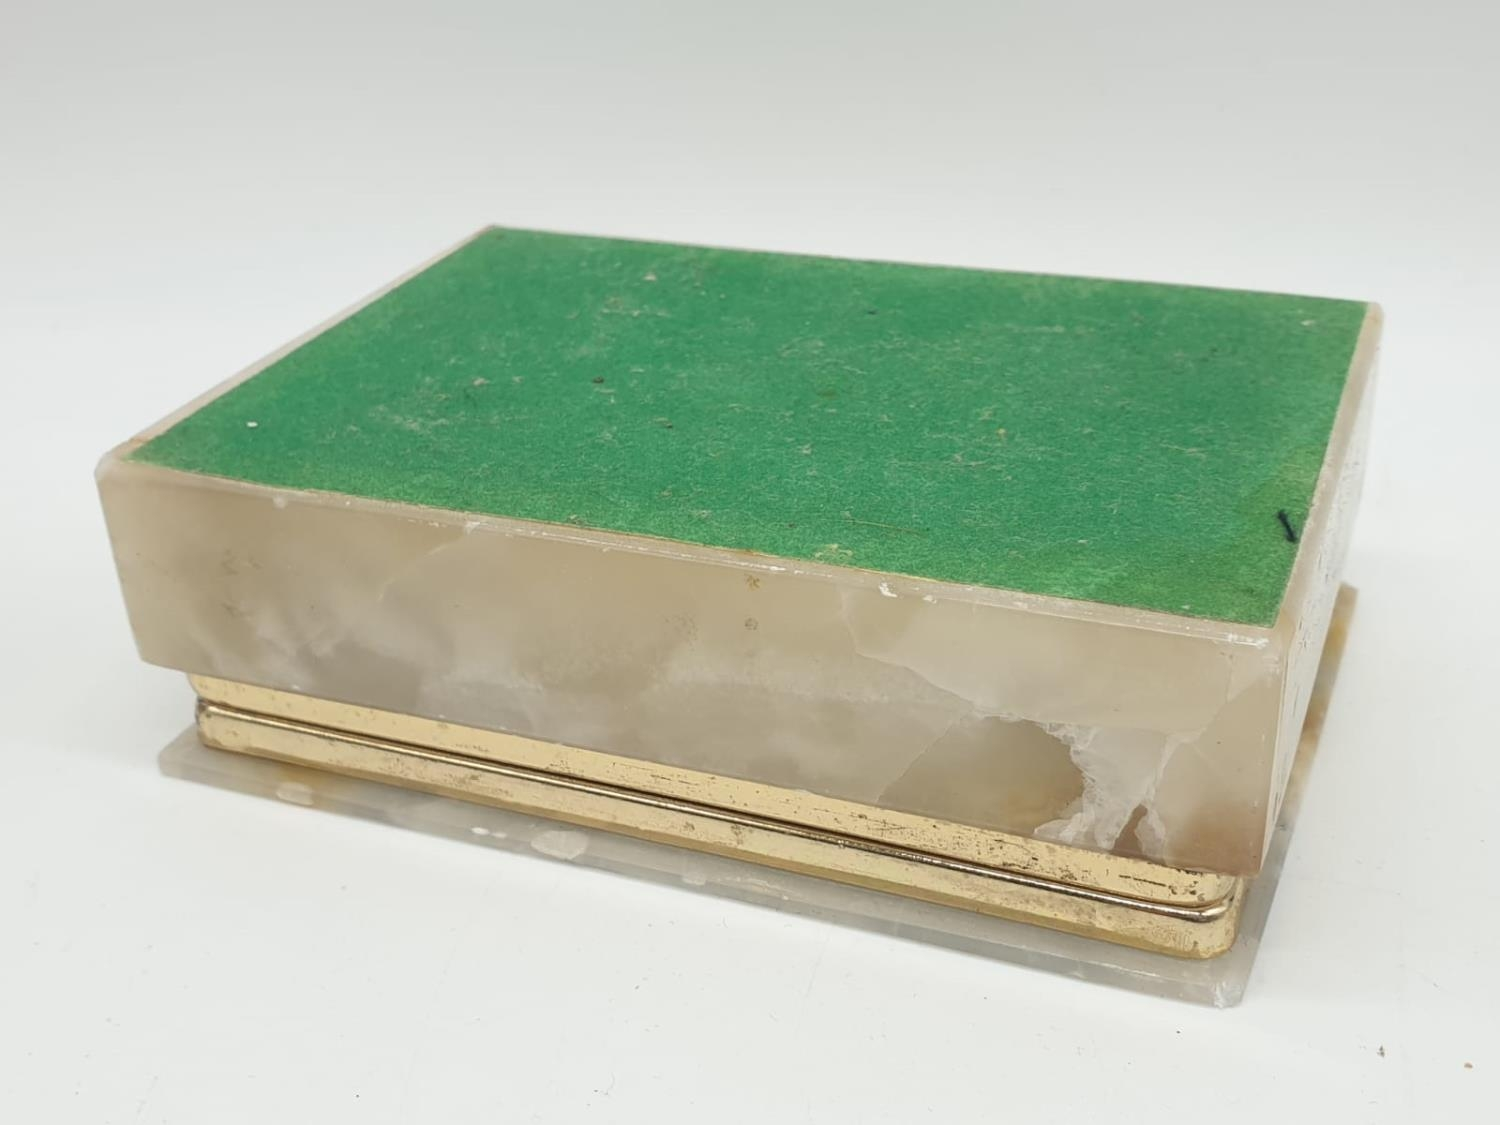 An onyx cigarette box, lighter and 2 onyx ash trays (small chip on cigarette box lid). - Image 5 of 16